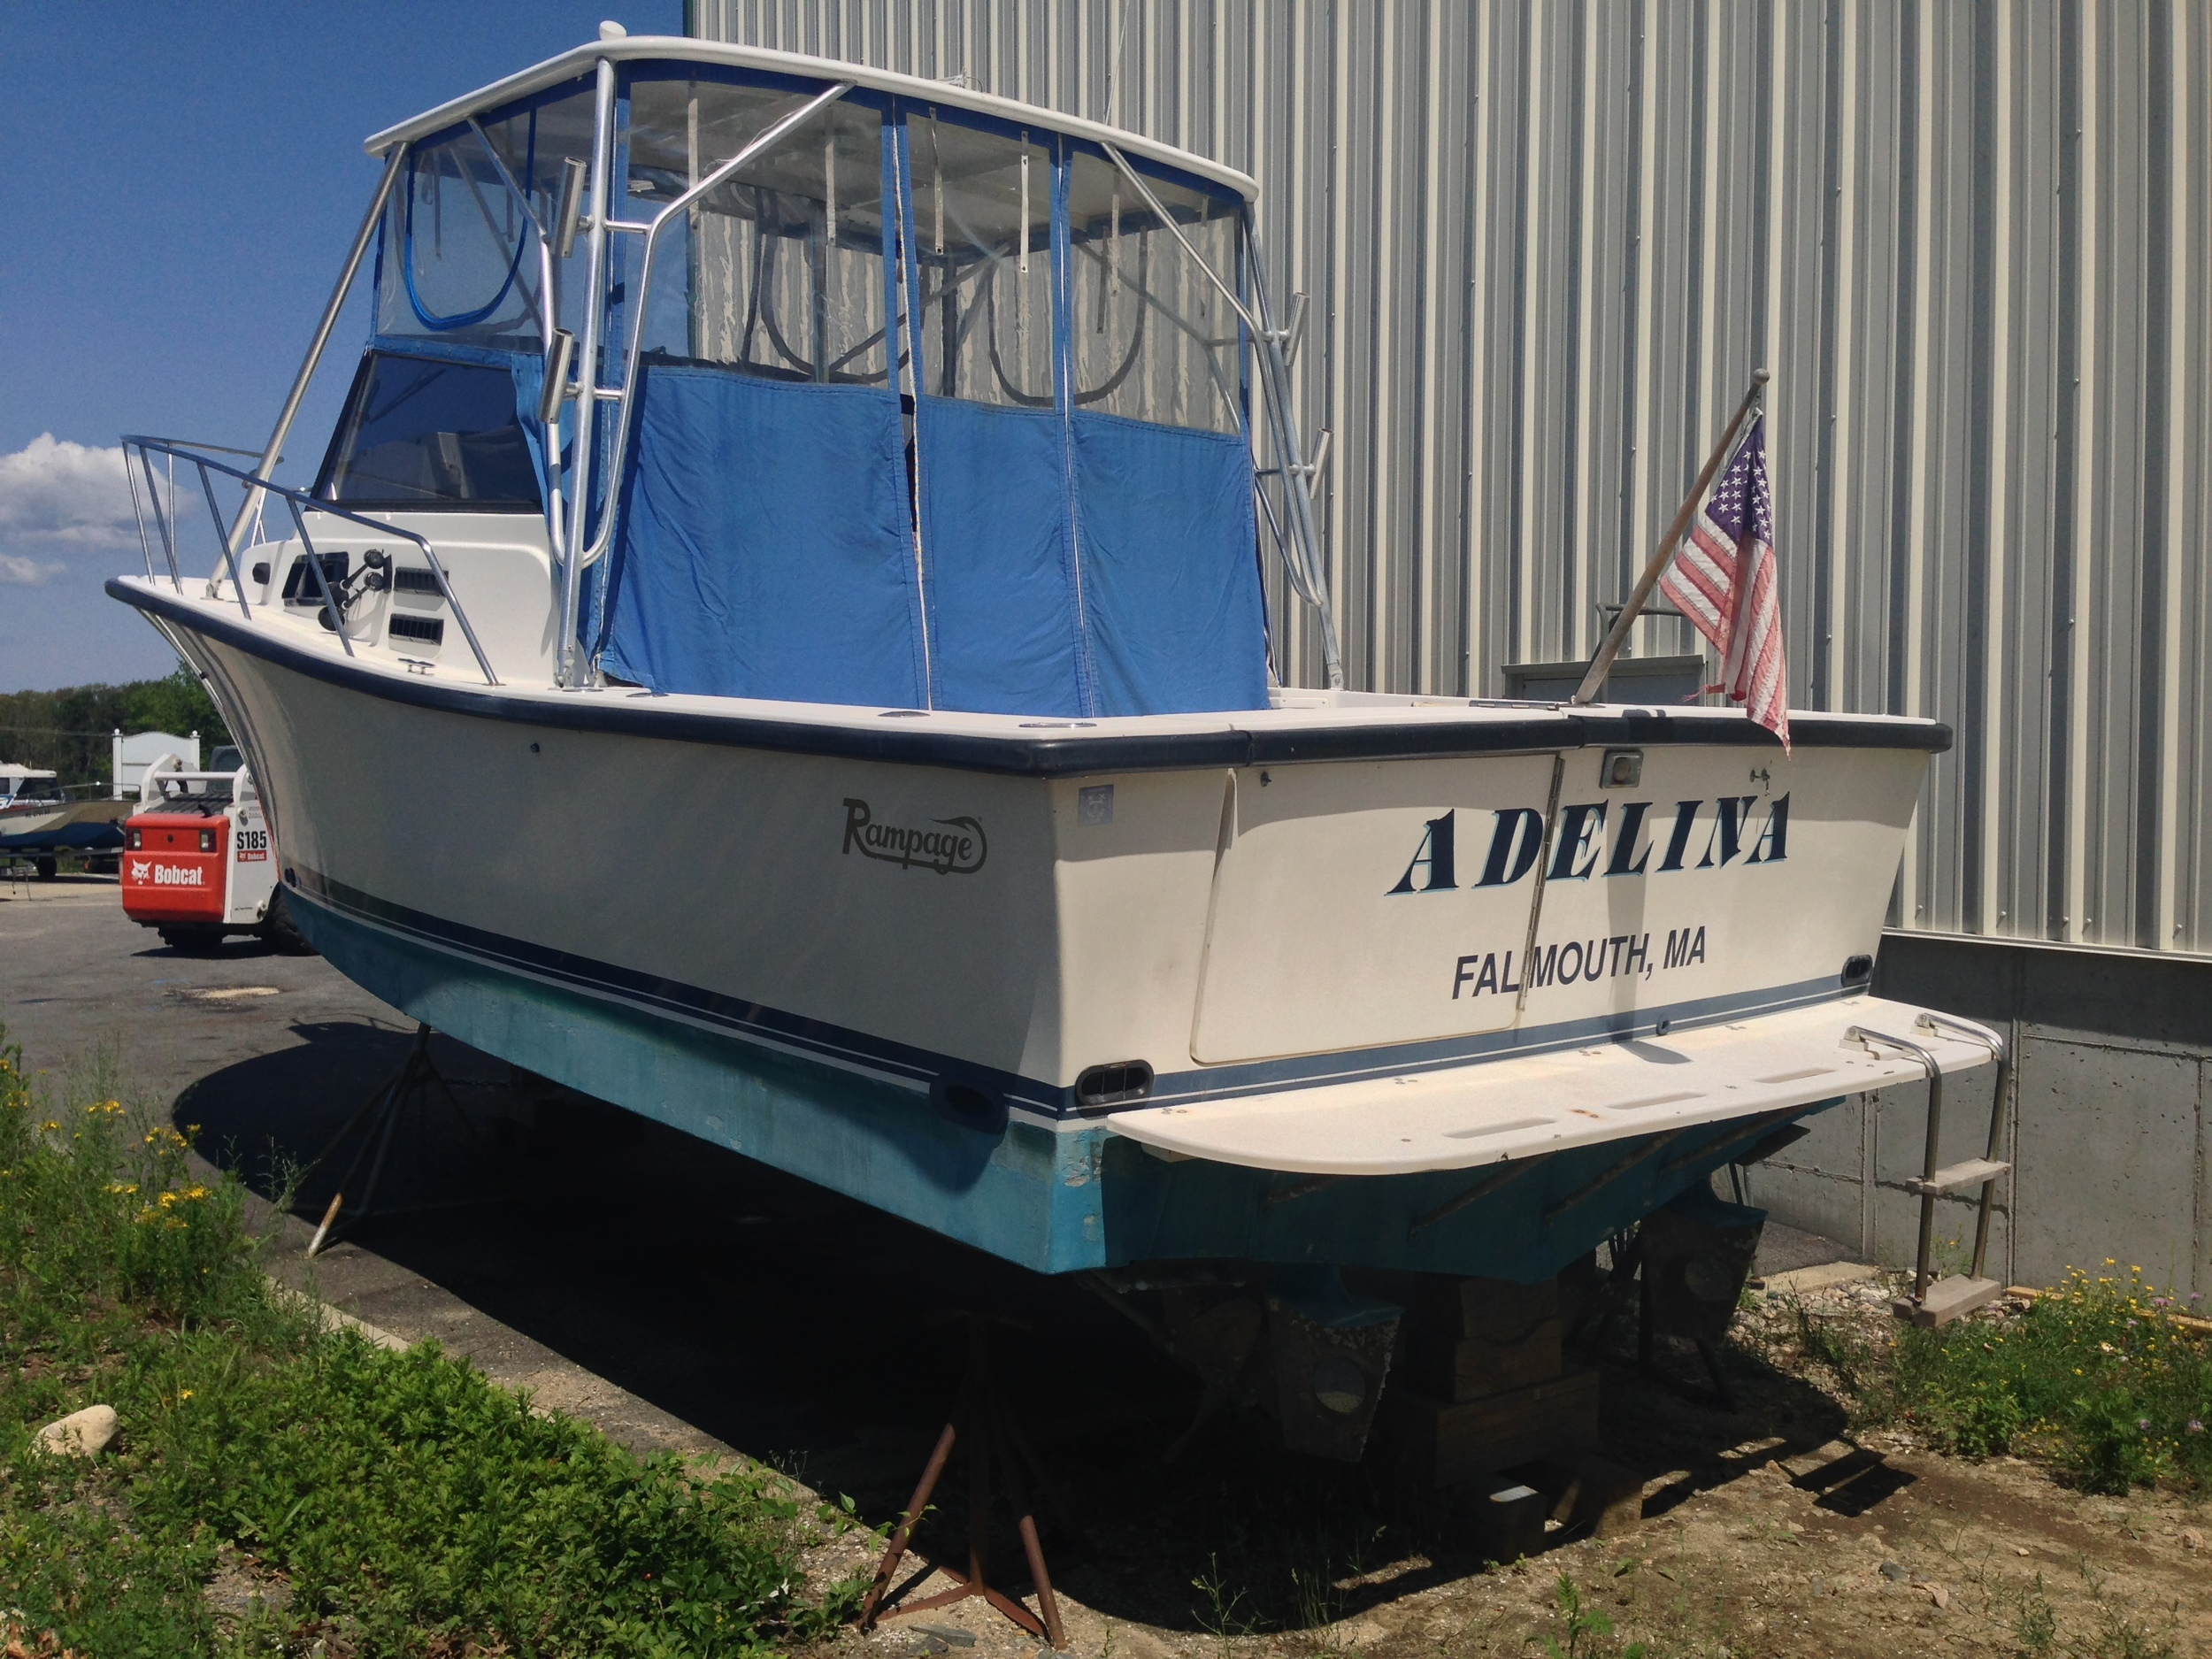 31' Rampage with twin 5.9 l. Cummins diesel engines, hardtop, fully enclosed head, tuna door, full galley, v-berth with bunks. Call us to come view this boat! 508-563-9800